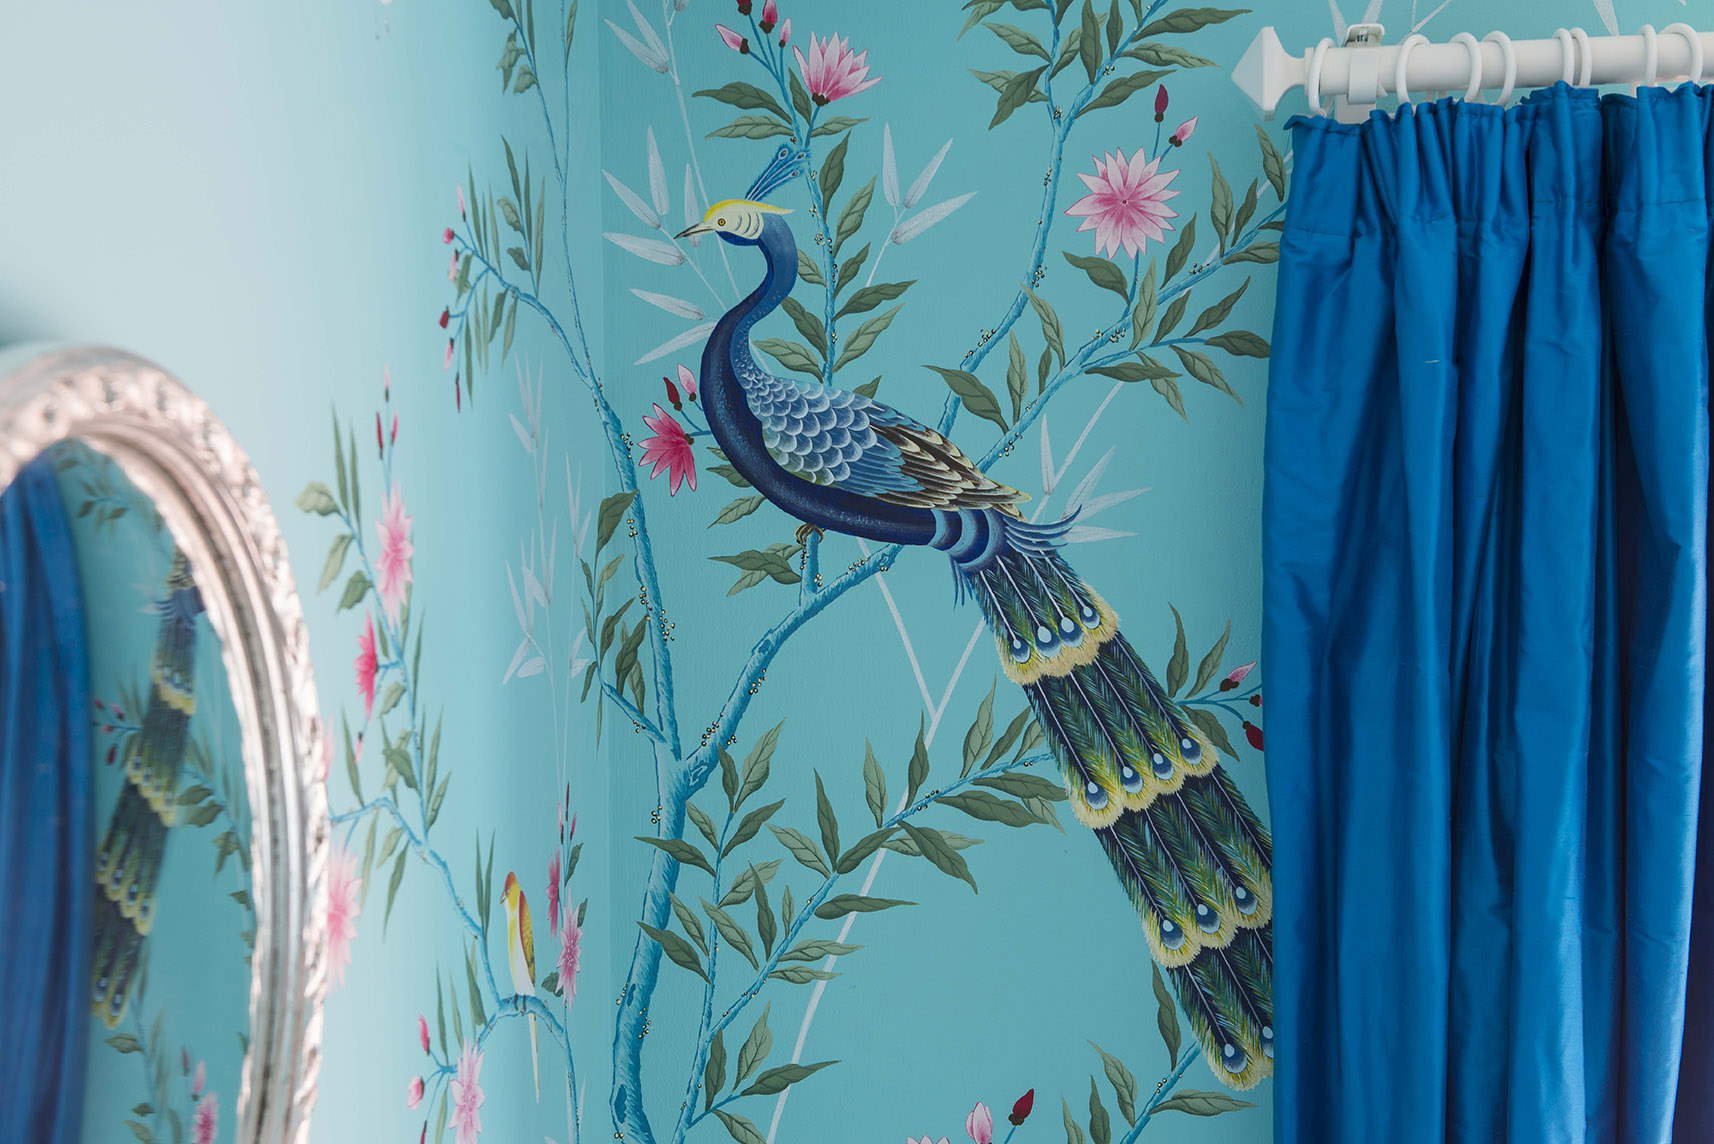 diane hill hand painted interiors turquoise chinoiserie mural nursery room peacock